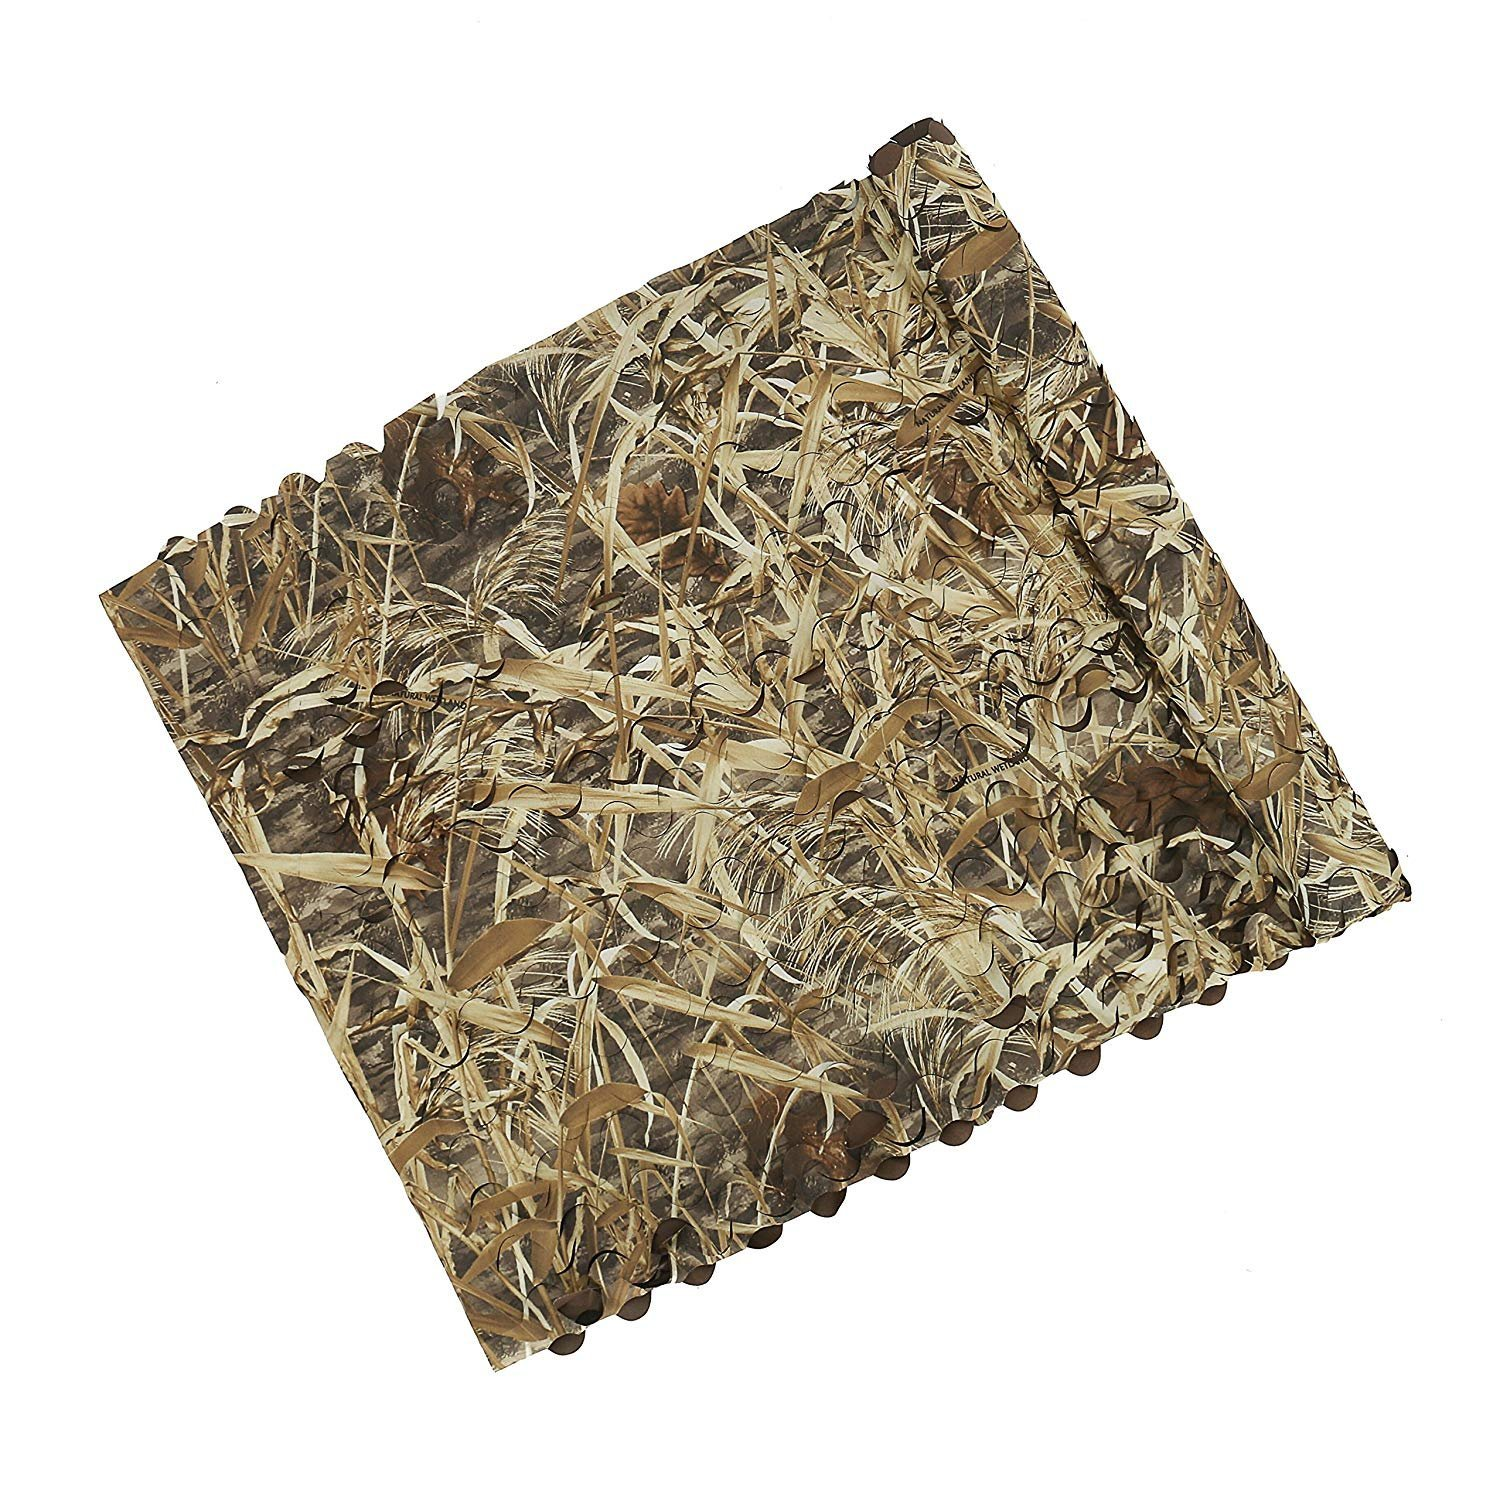 Auscamotek Duck Blind Material Camo Netting for Bird Hunting Boat Cover Camoflage Nets Dry Grass Pattern 5ft×20ft by Auscamotek